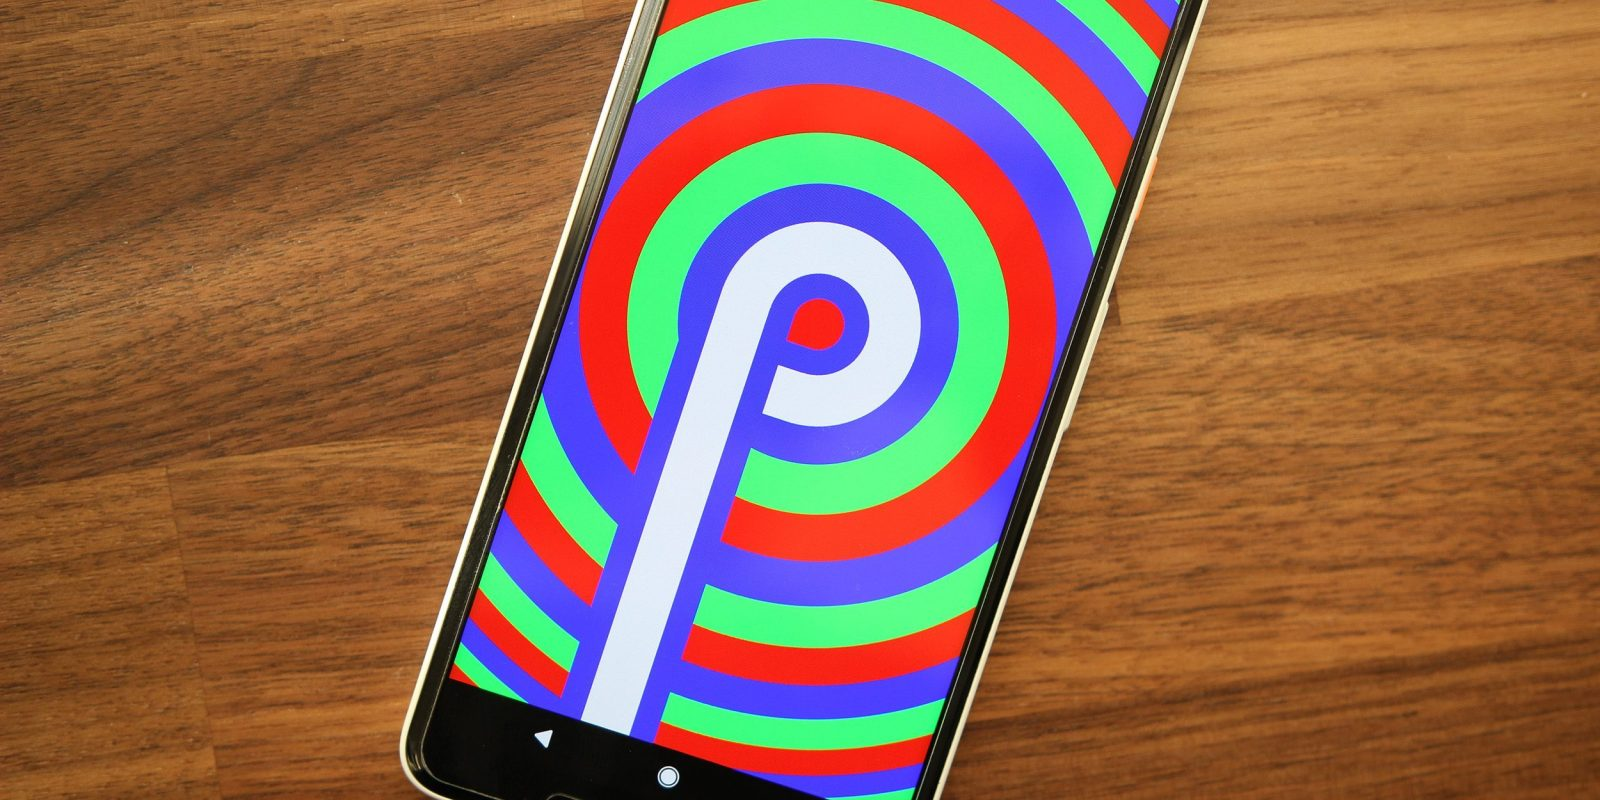 How to enroll in the Android P Beta Program - 9to5Google